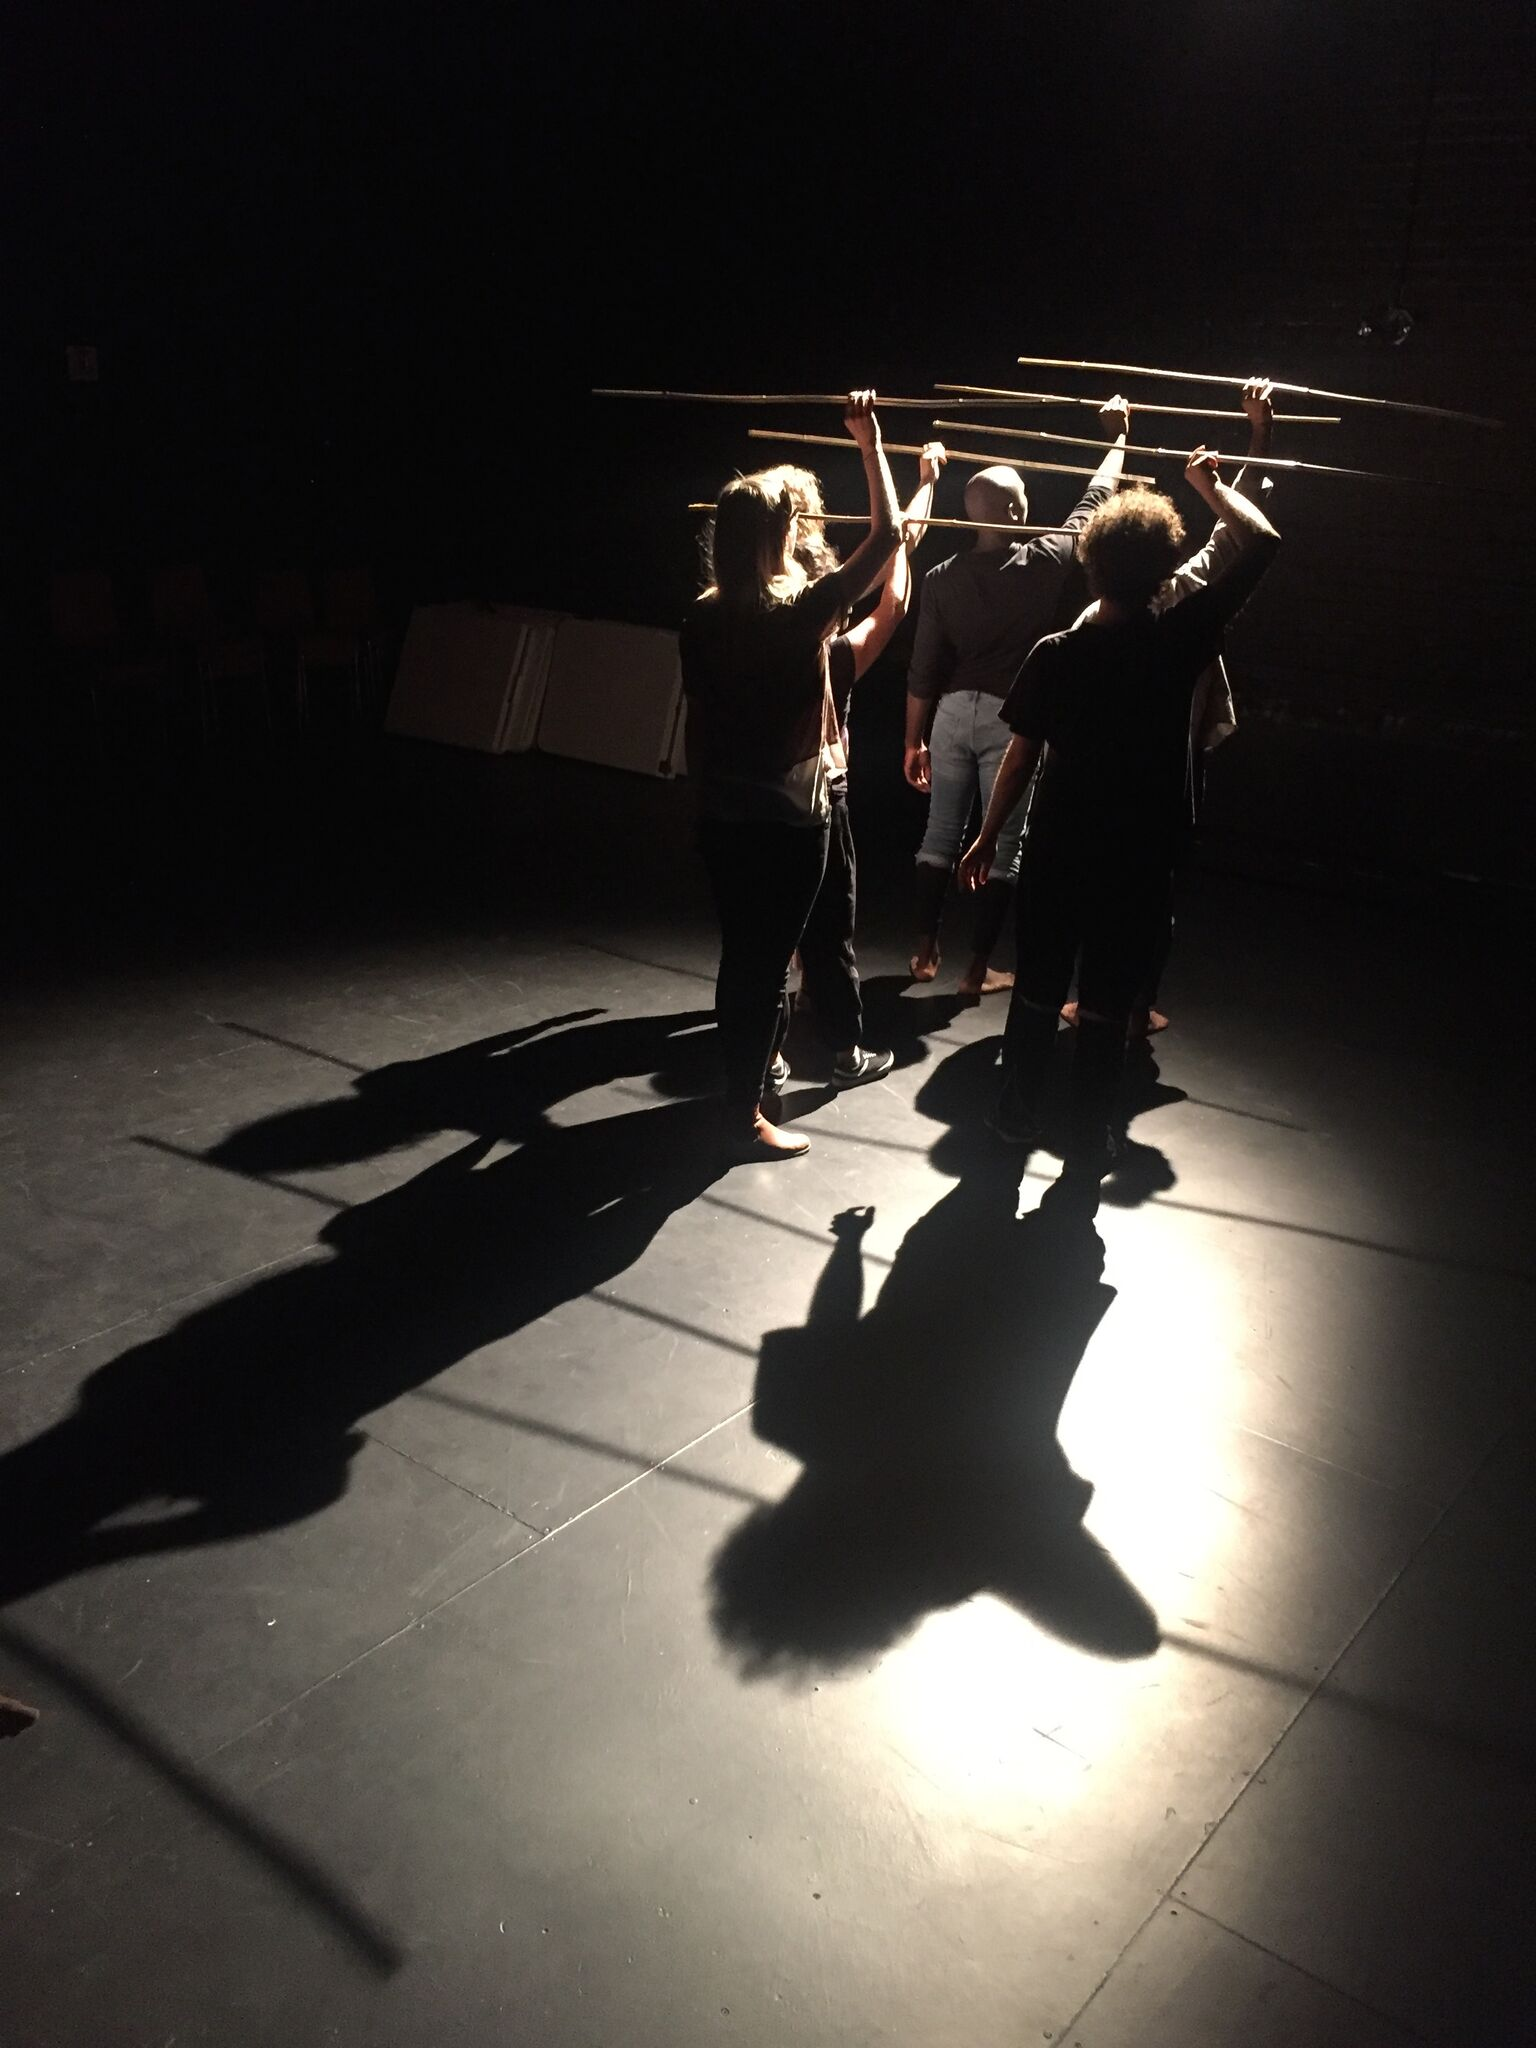 People holding sticks above head with shadows behind.